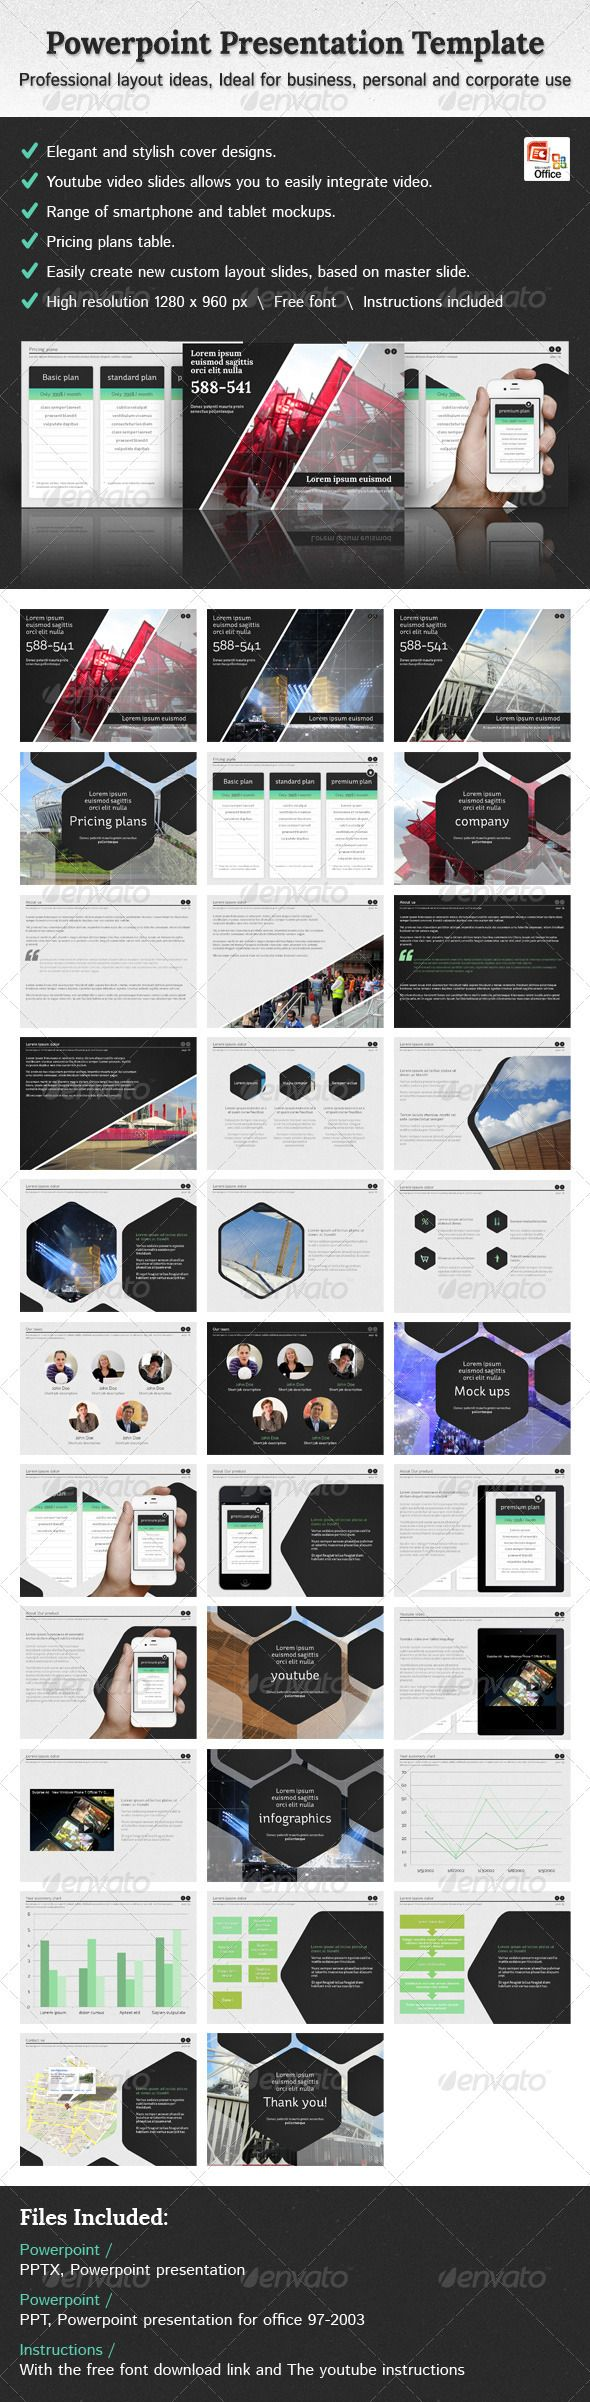 Hexagon - Powerpoint Presentation Template